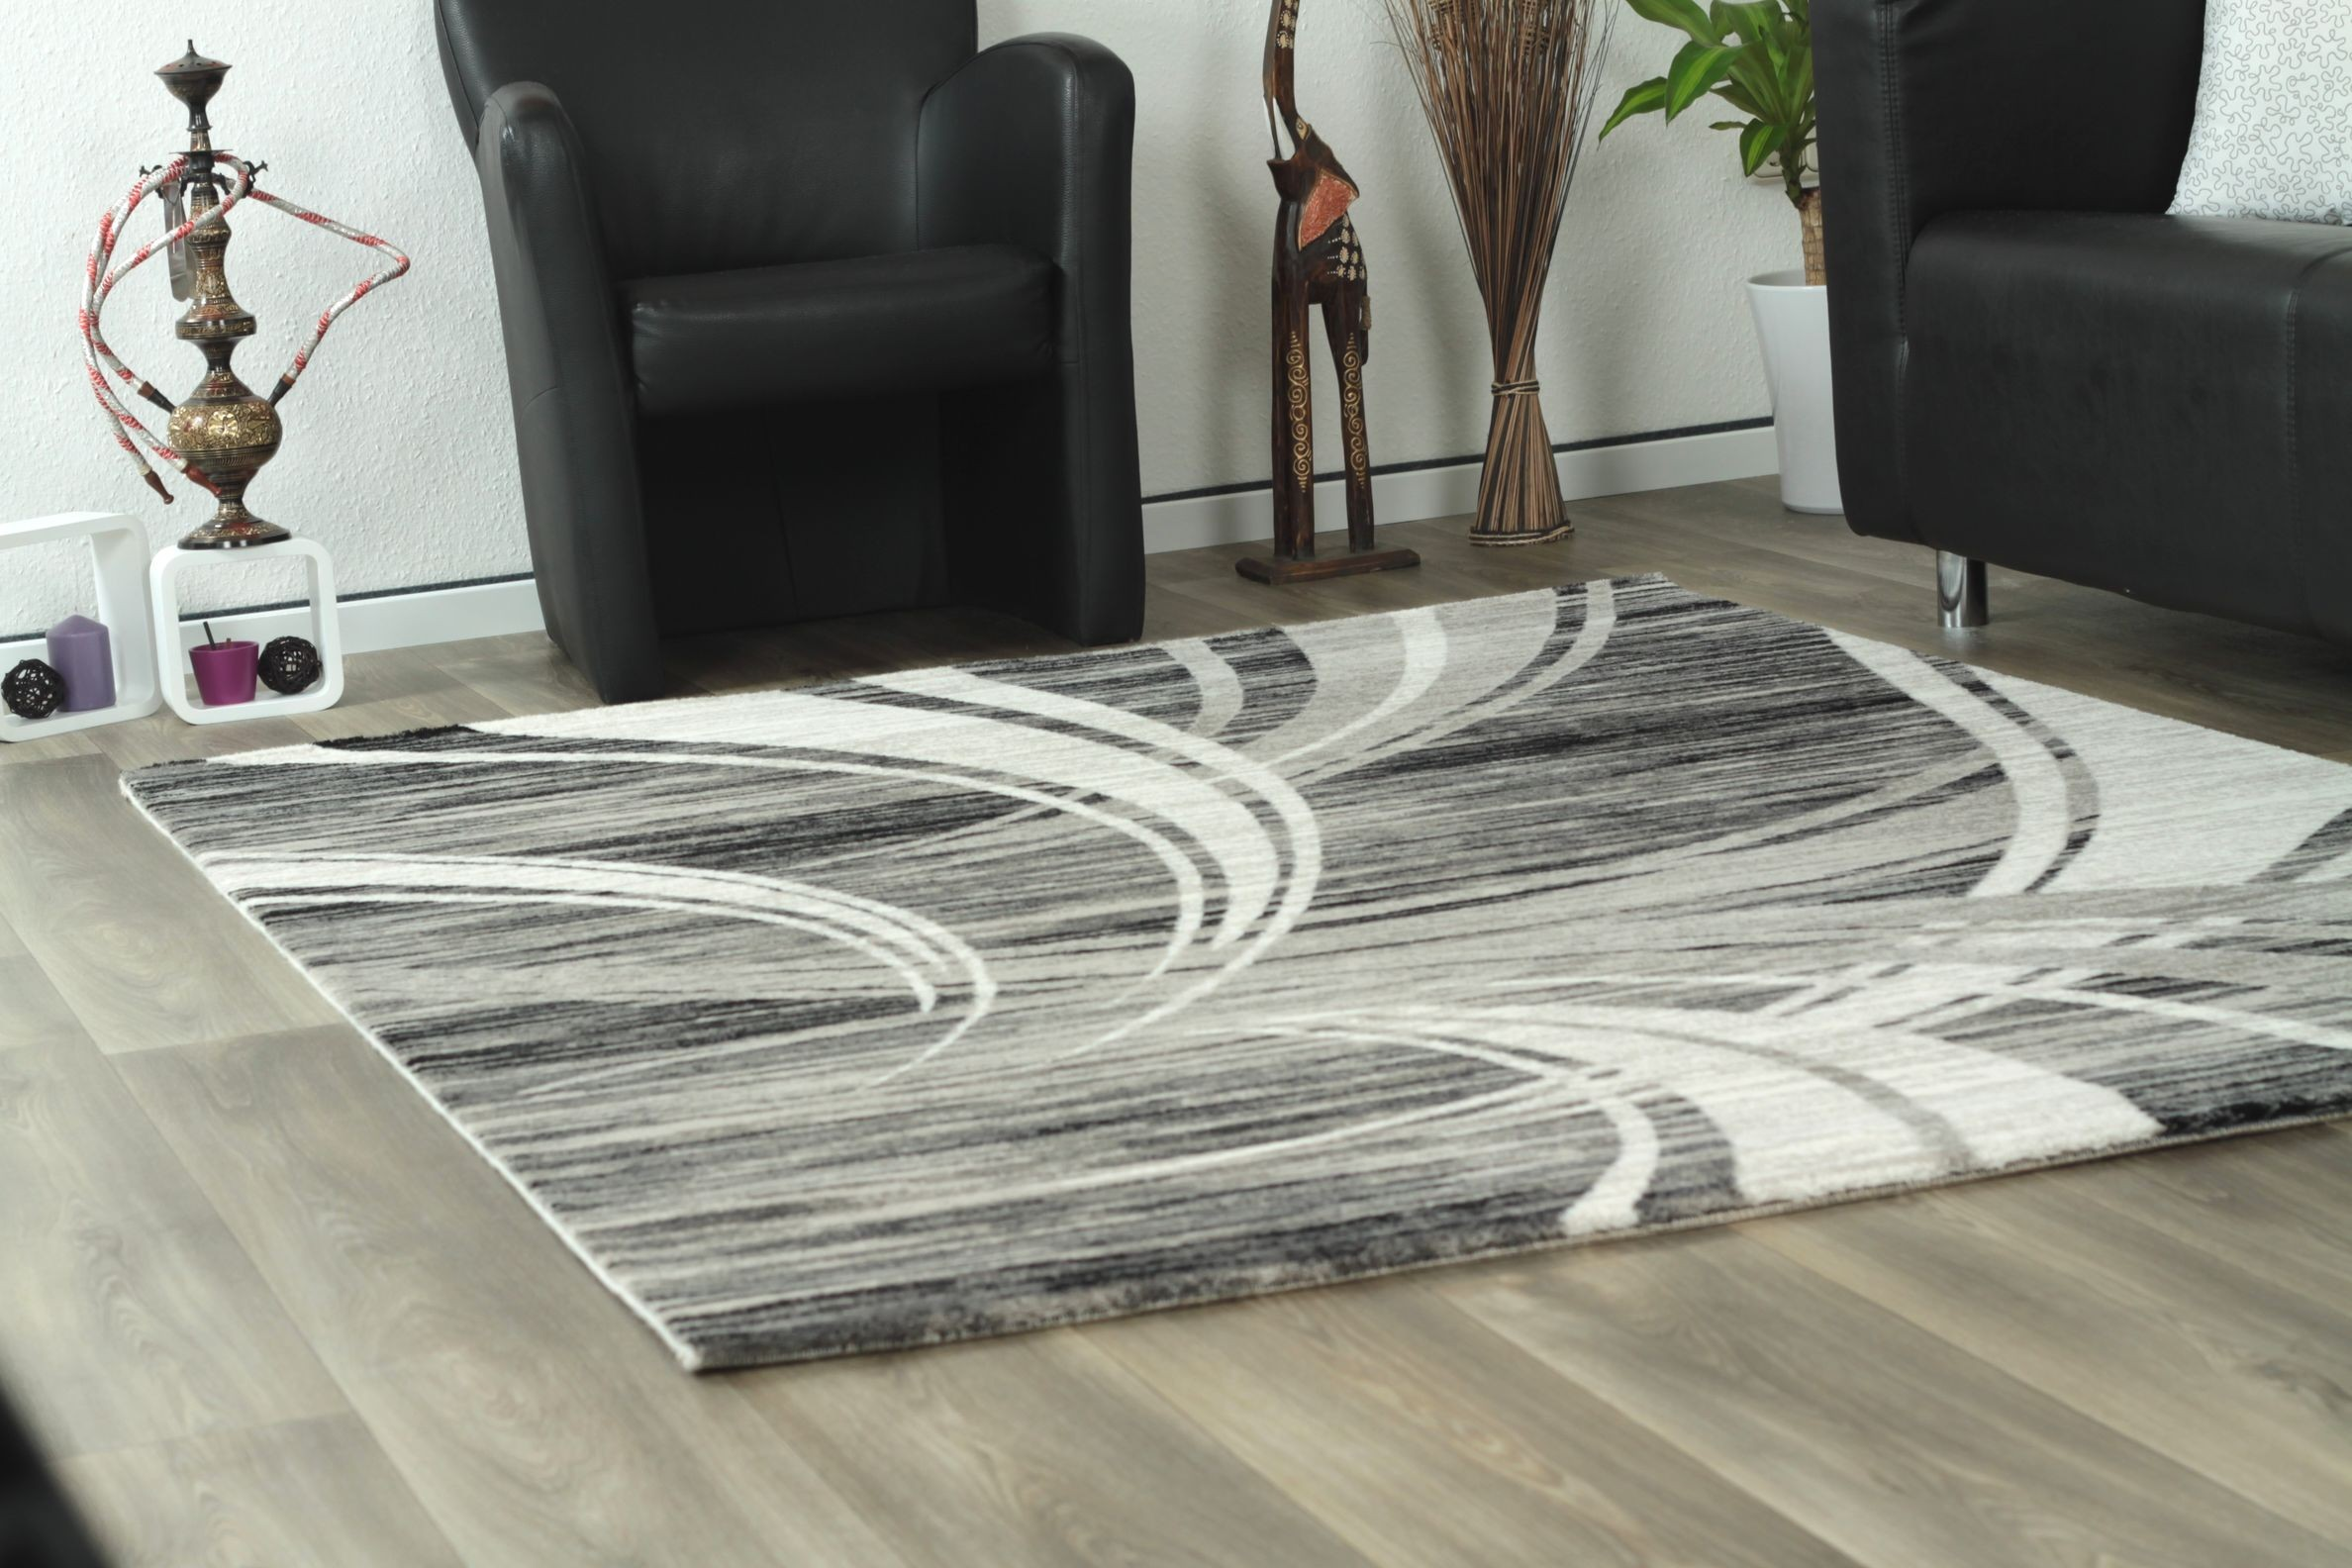 tapis de salon design en acrylique moderne nevio 5. Black Bedroom Furniture Sets. Home Design Ideas